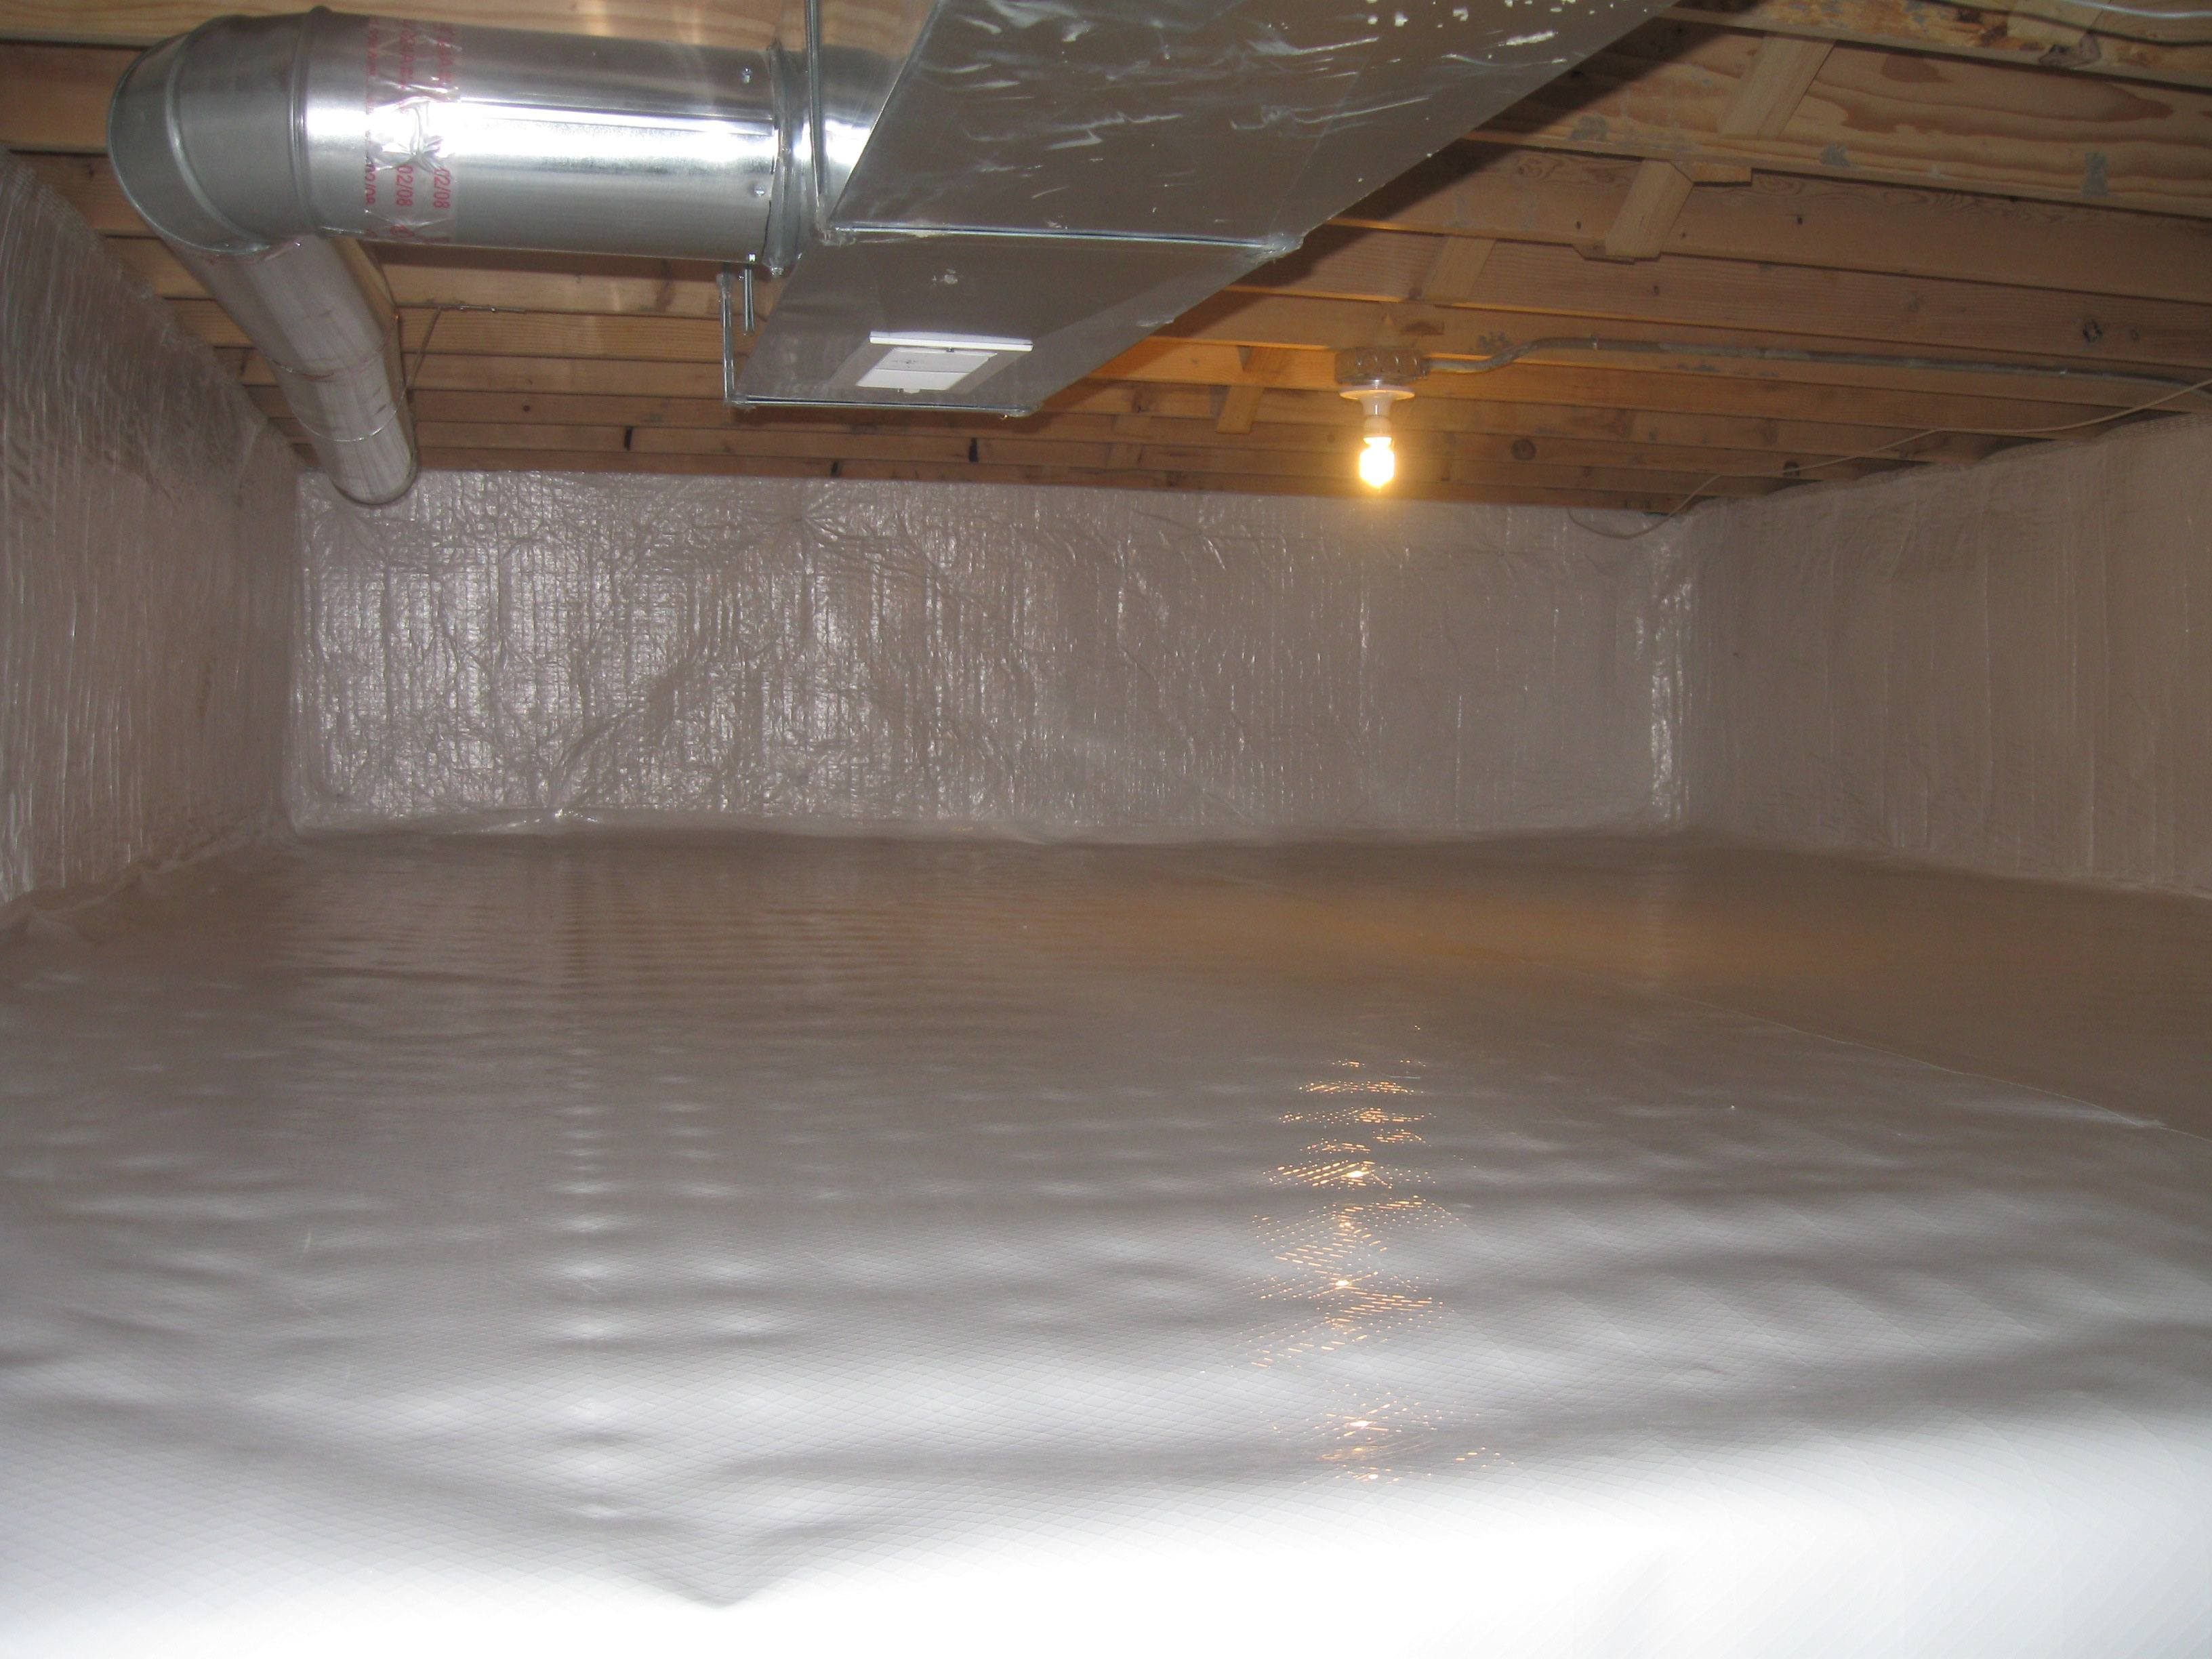 Crawl Space Encapsulation And Vapor Barriers For Damp